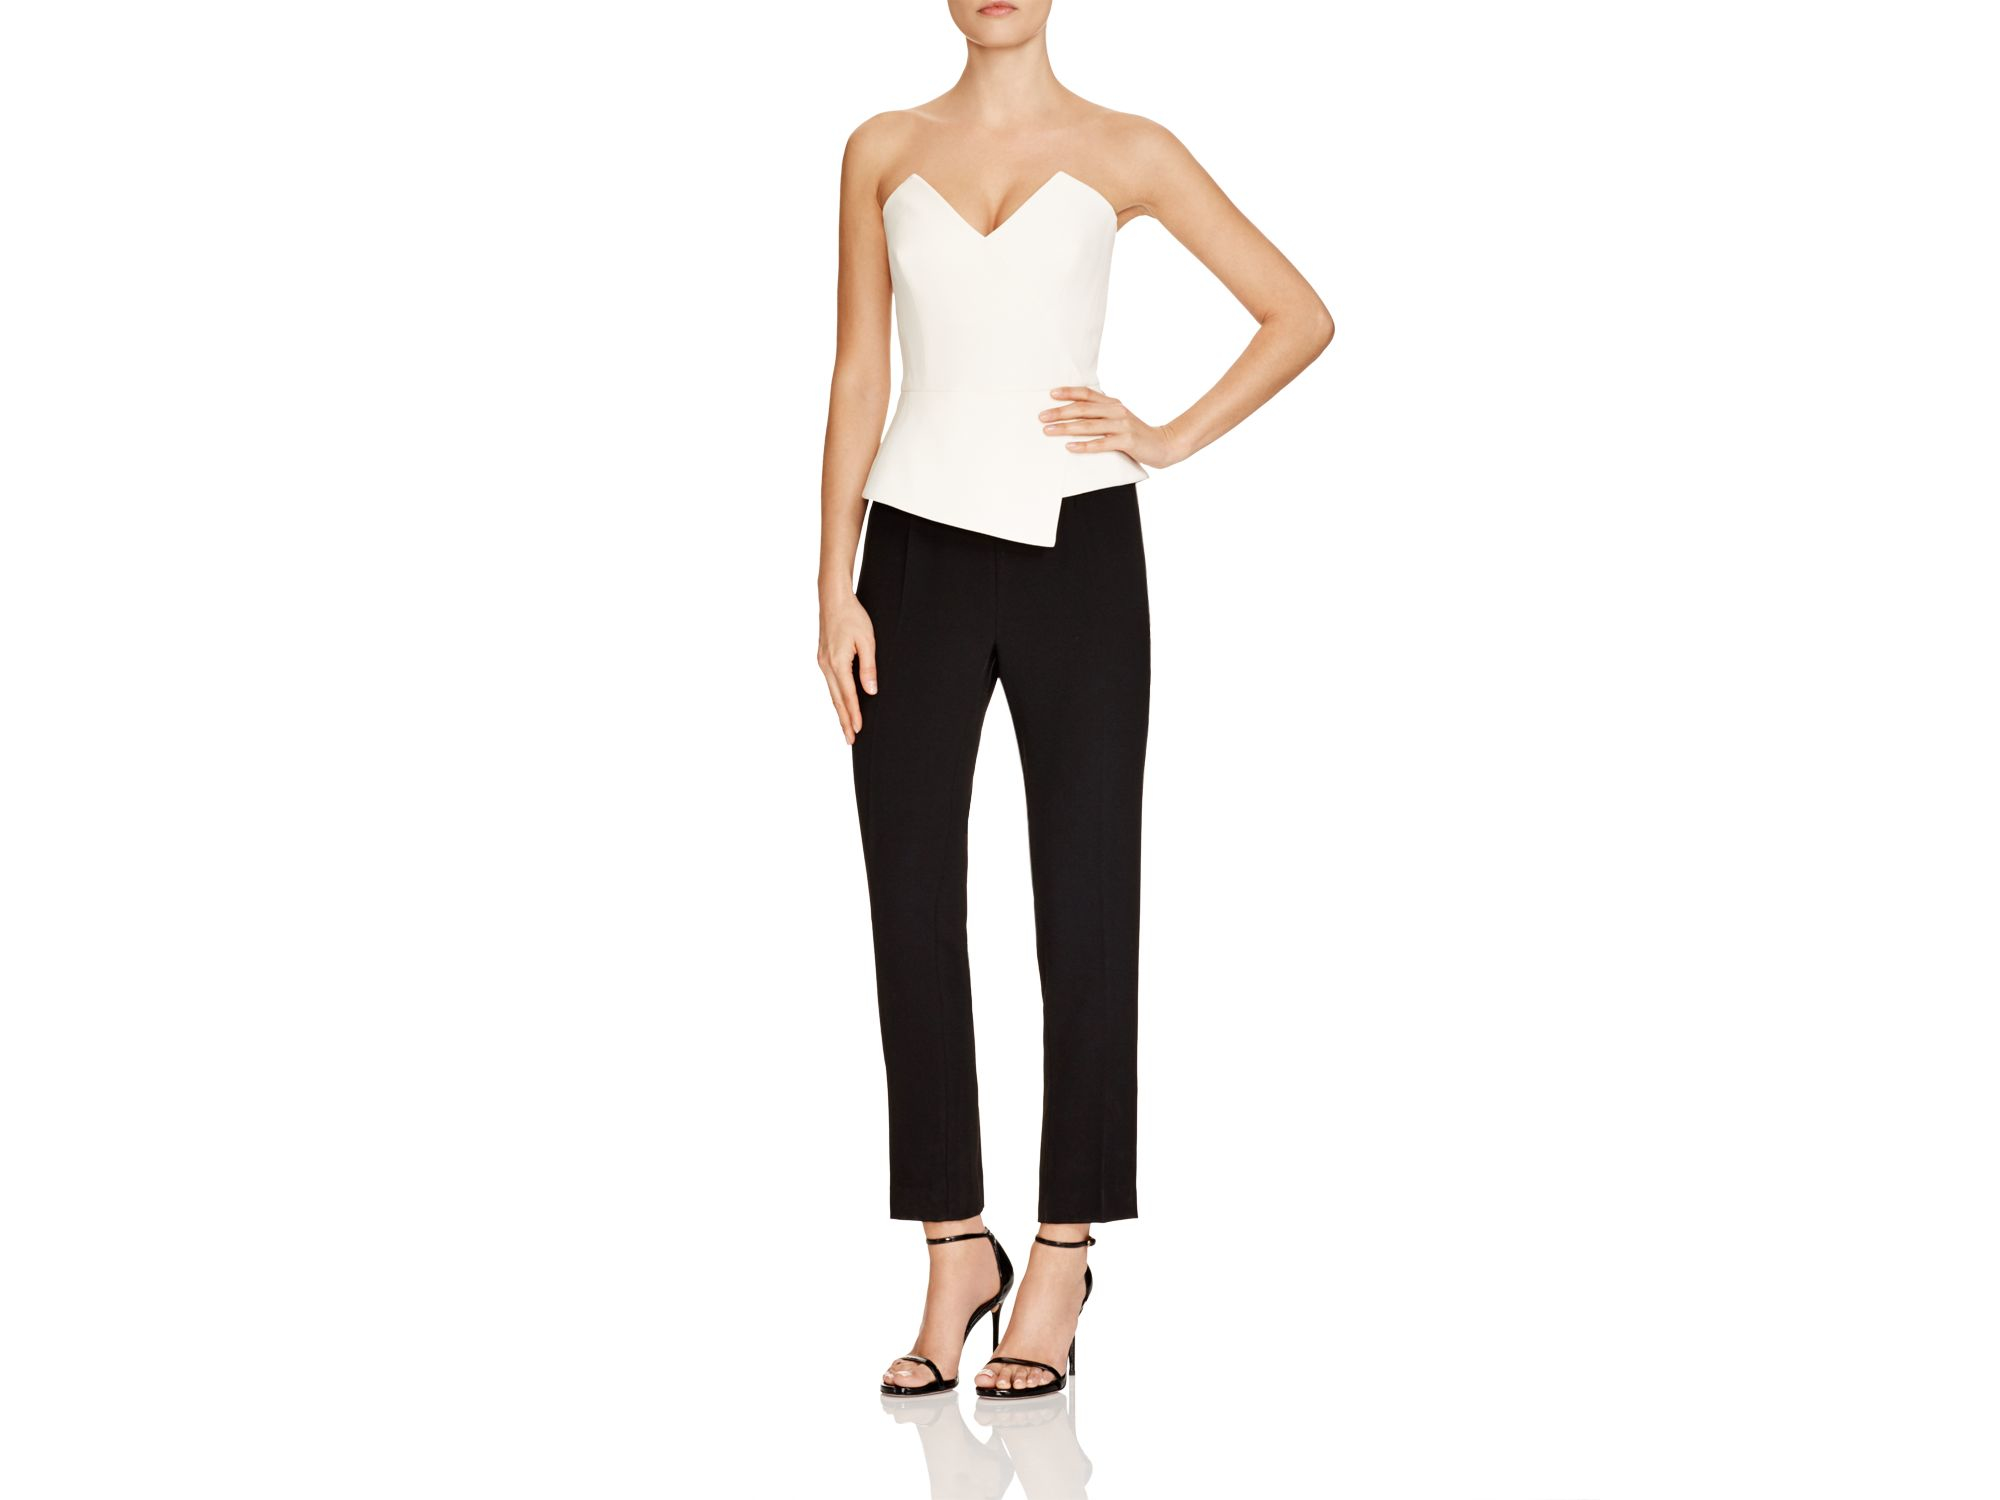 a568fdc658b Lyst - Reiss Dillon Bustier Jumpsuit - Bloomingdale s Exclusive in Black